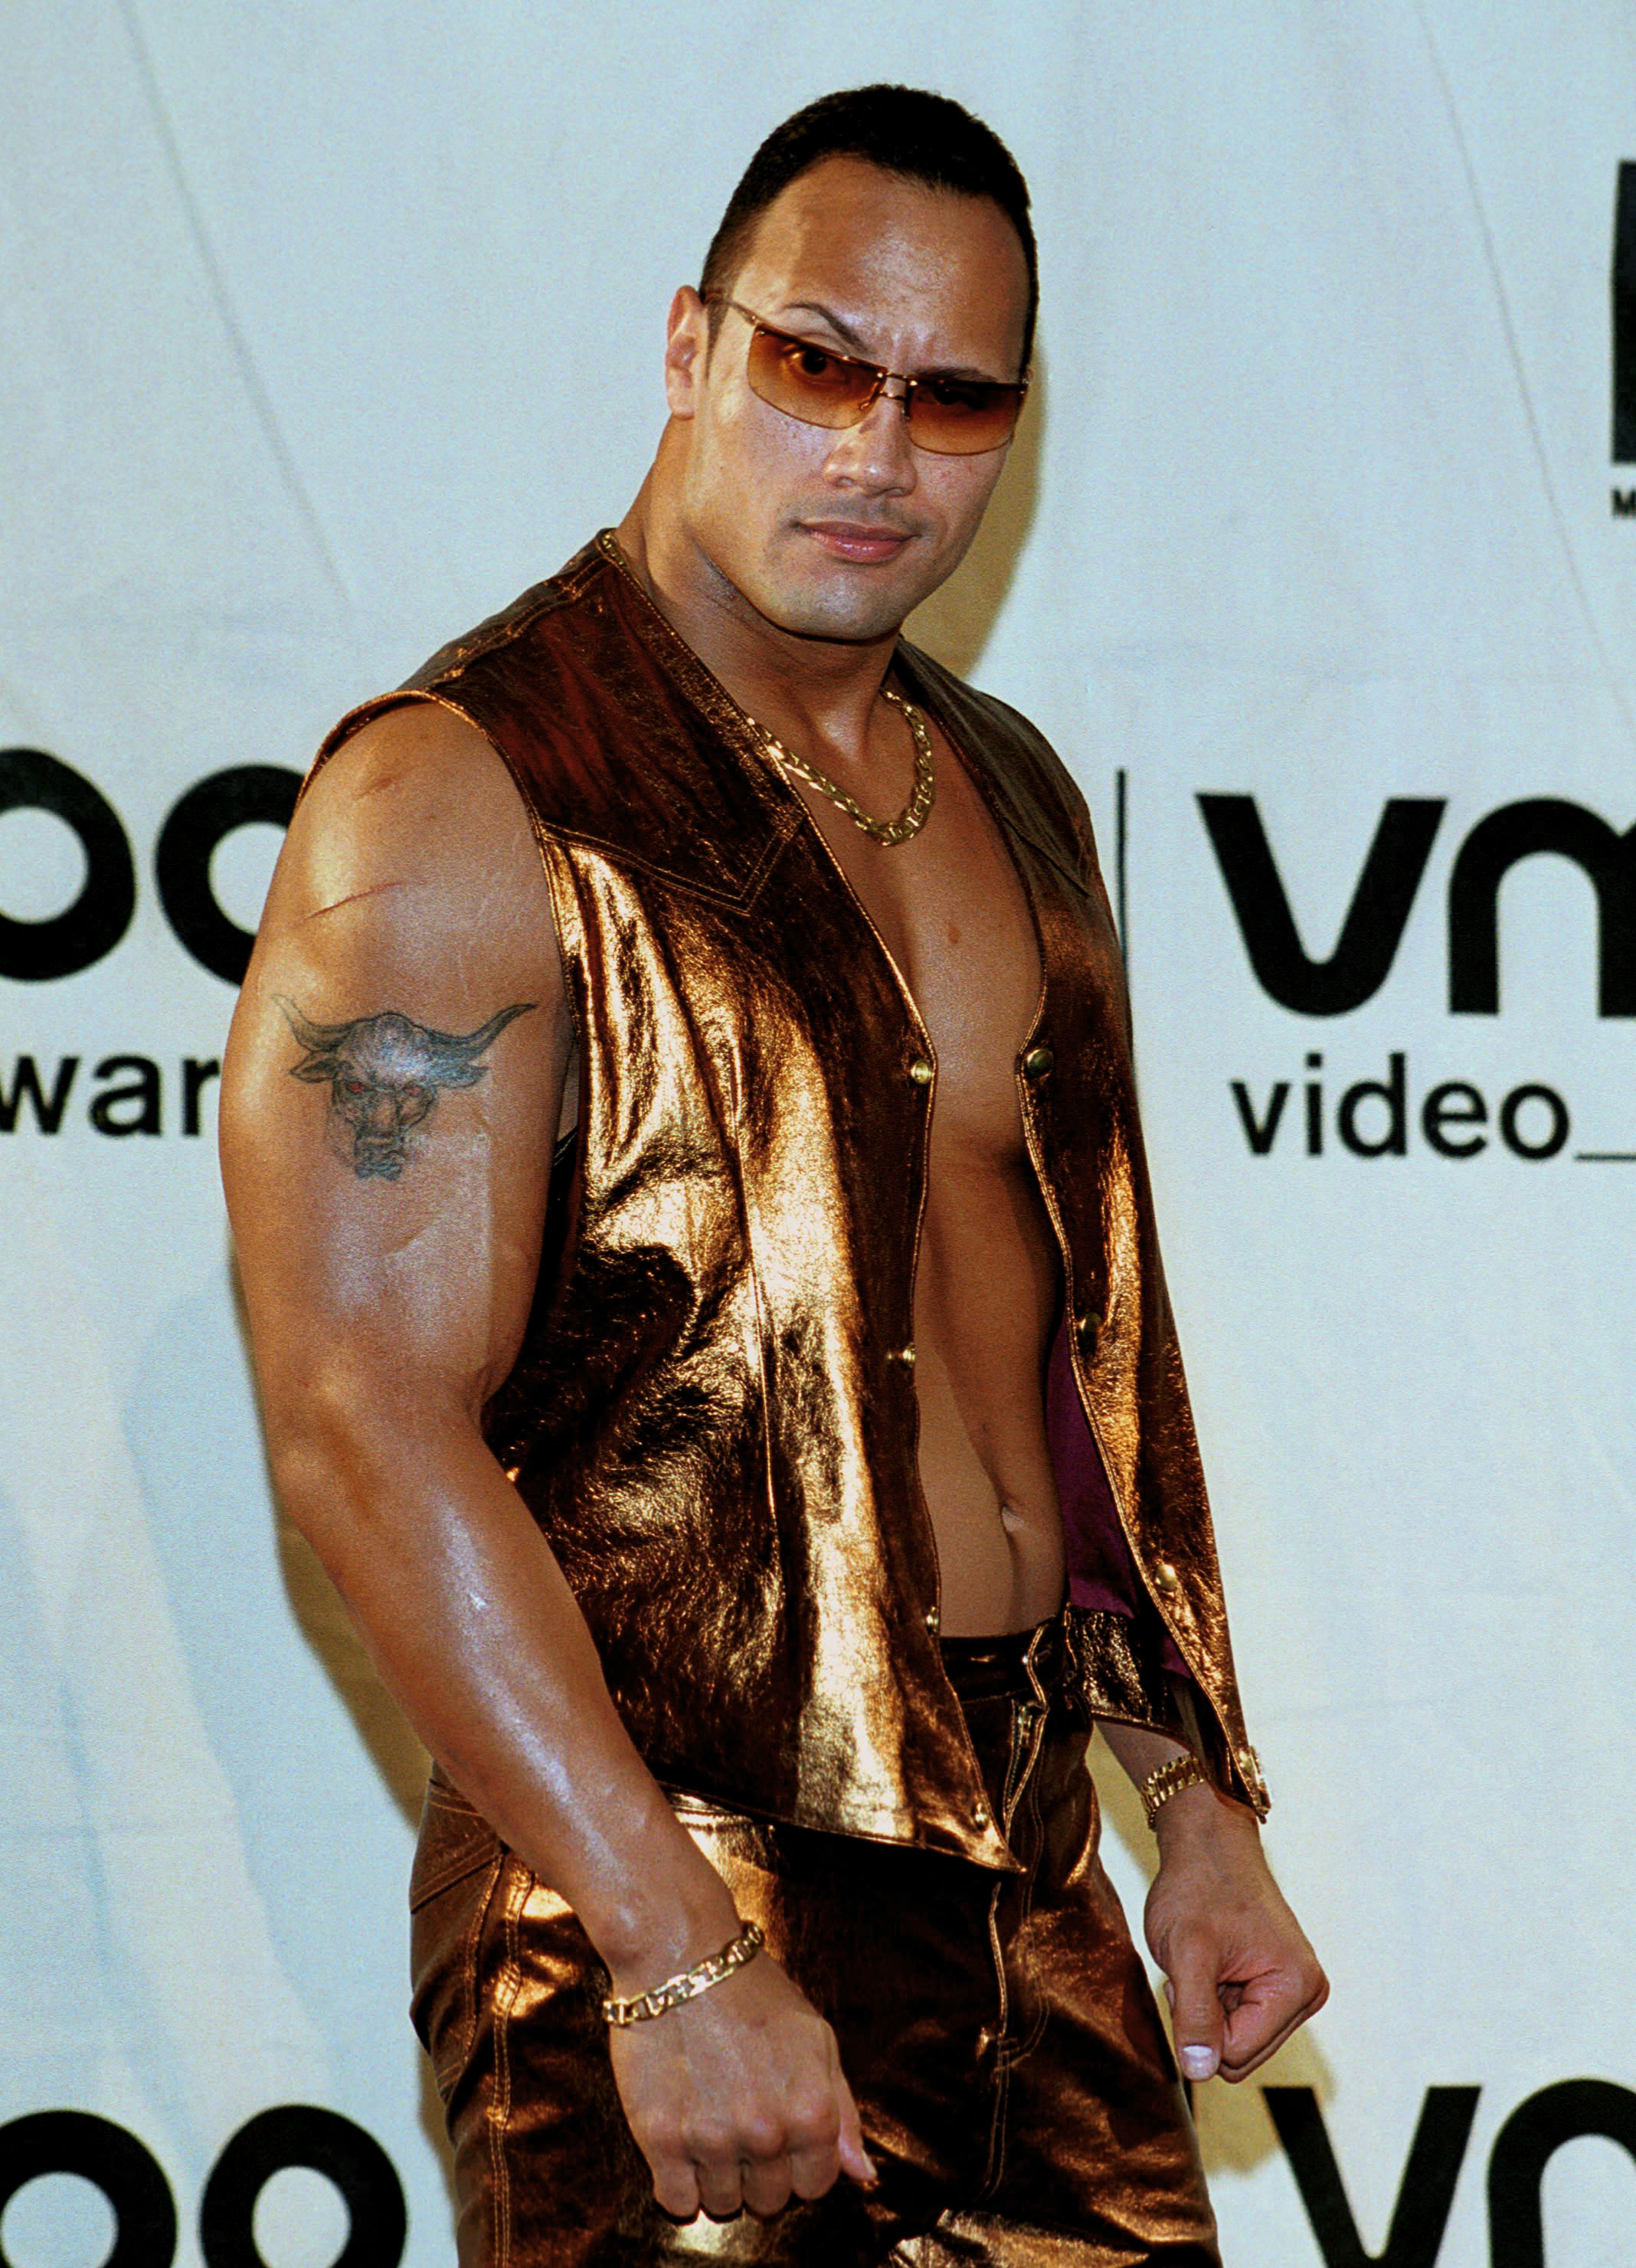 Dwayne 'The Rock' Johnson con pelo